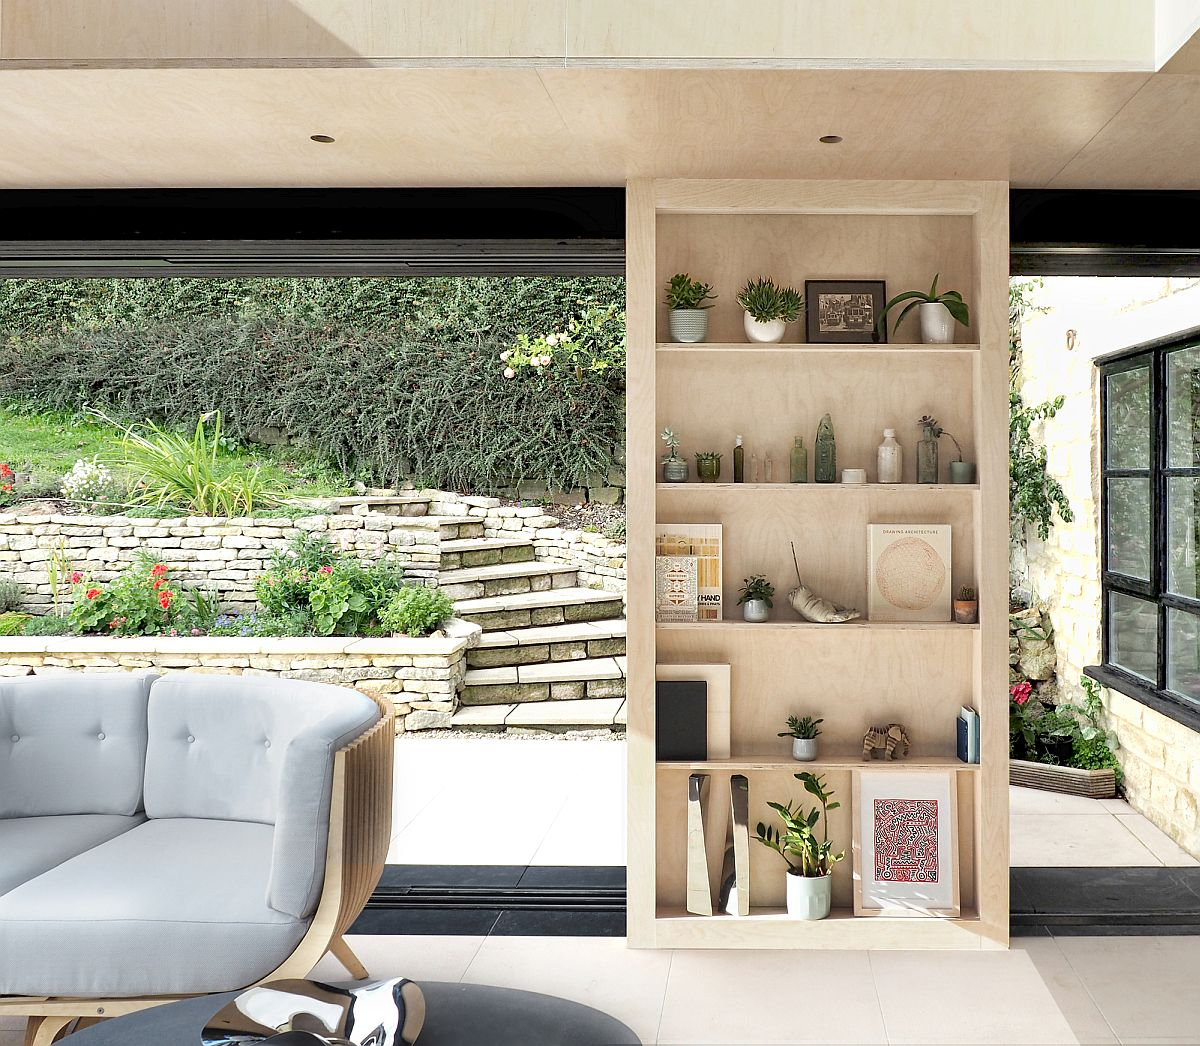 New reading room extension to classic 17th century cottage in UK